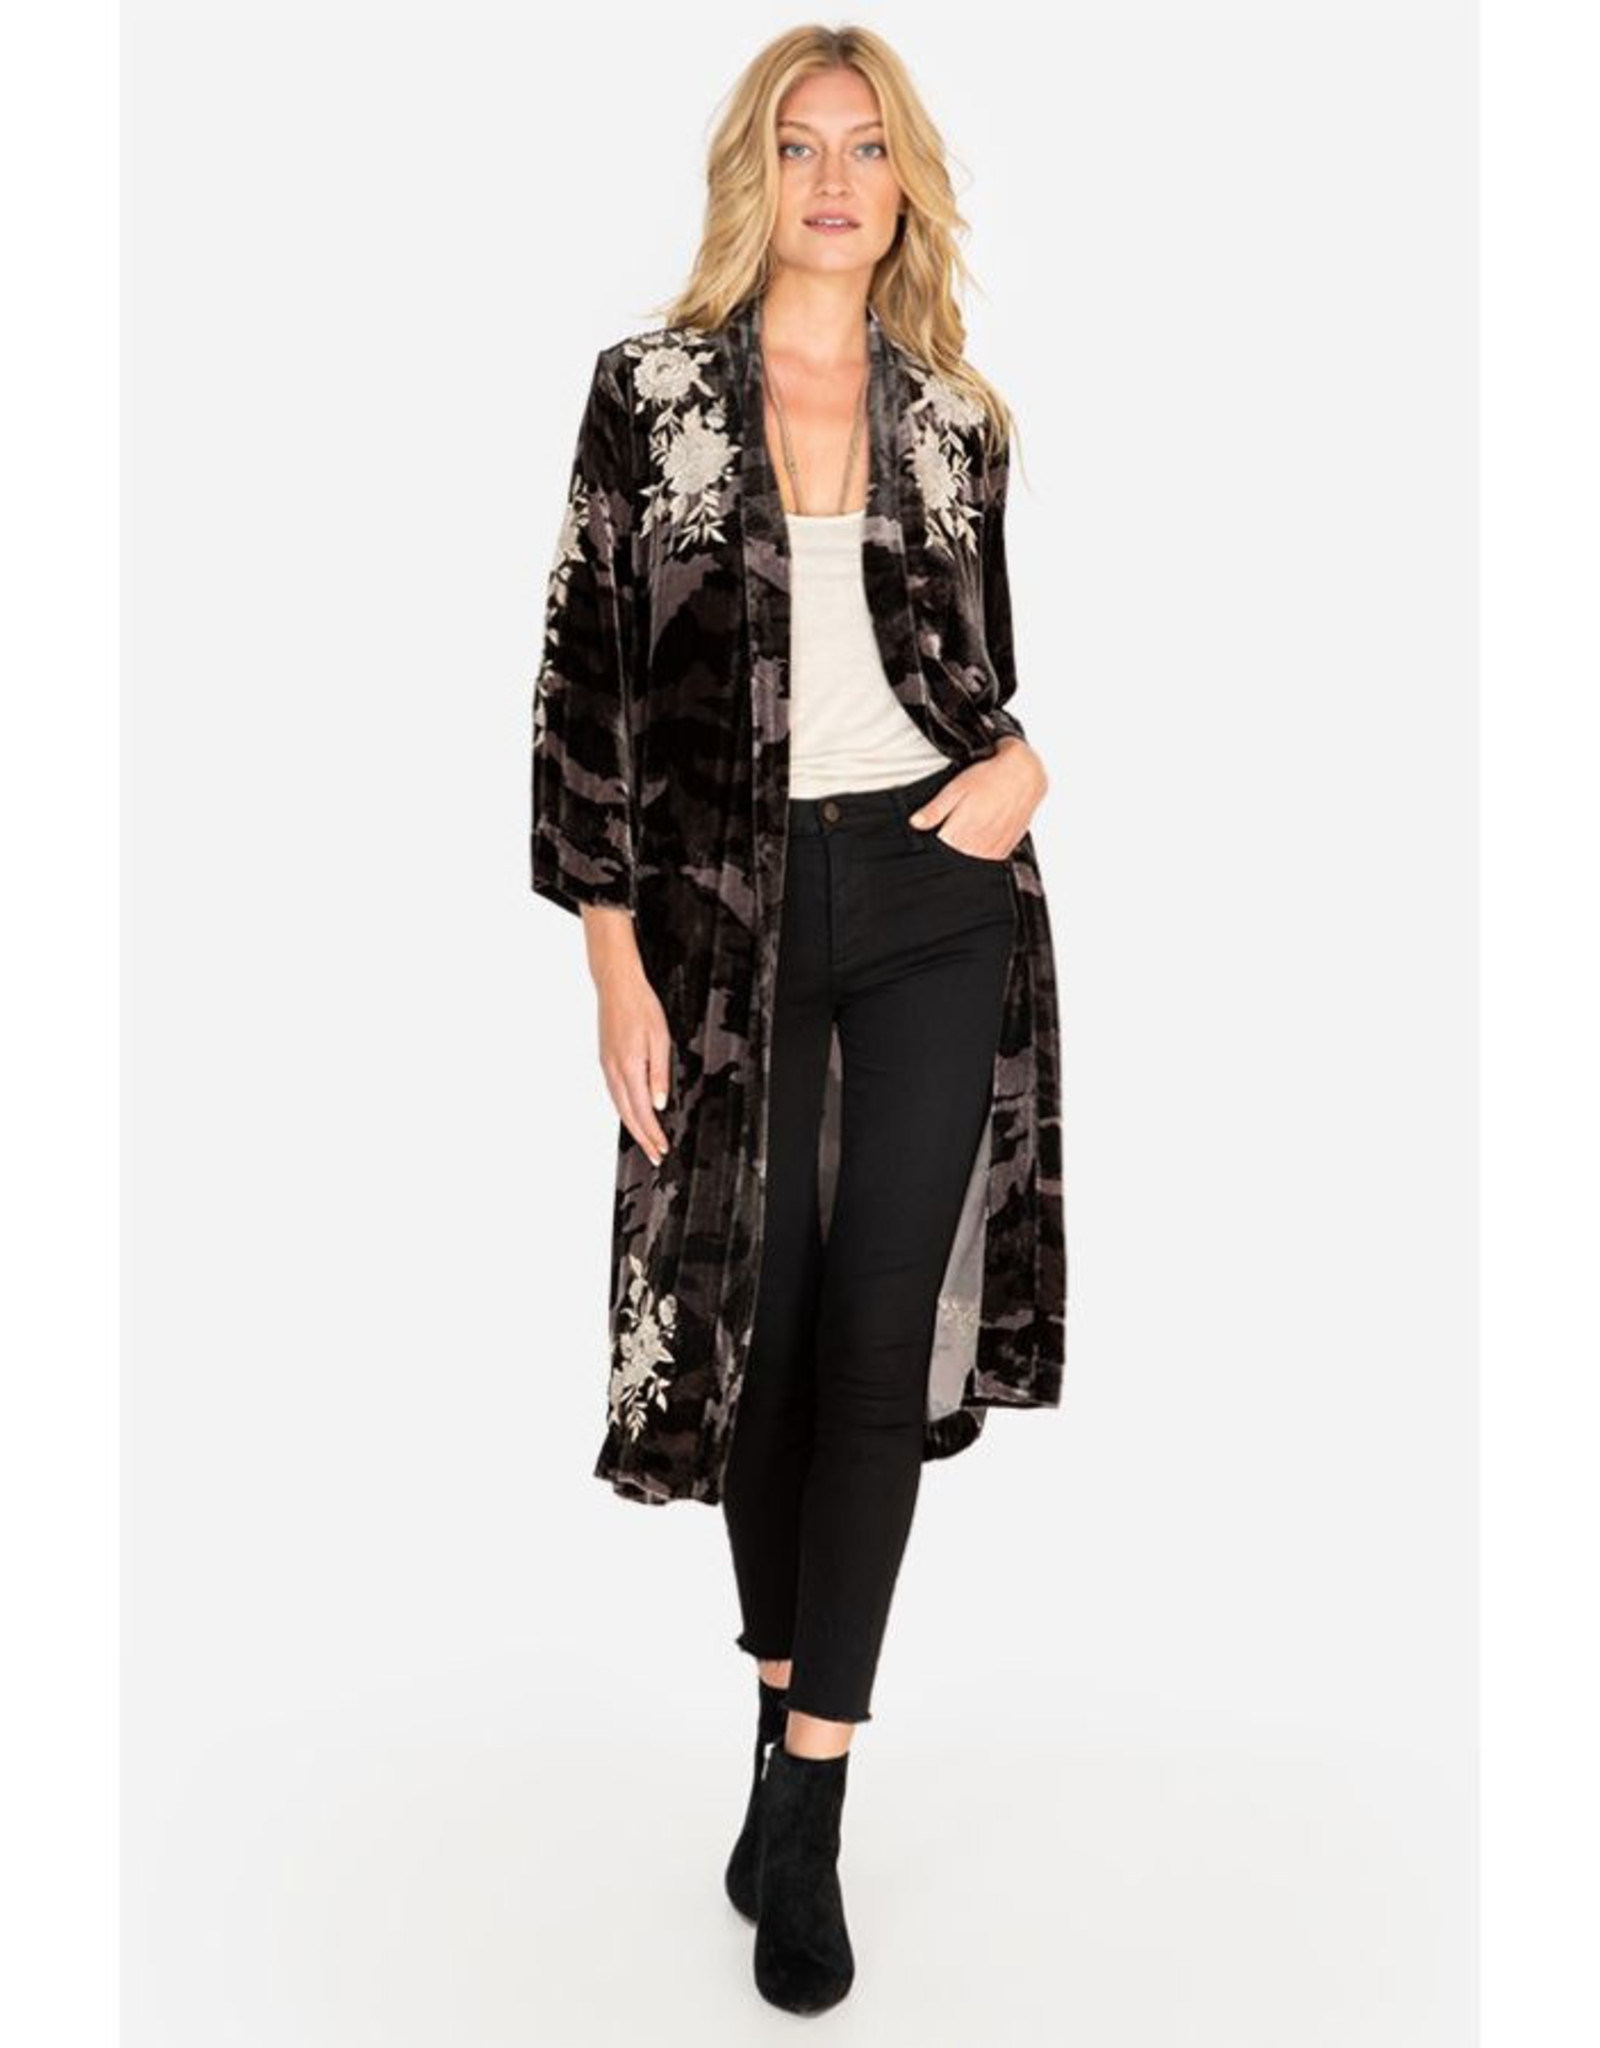 JOHNNY WAS SANTAL VELVET KIMONO COAT MOONLIGHT CAMO